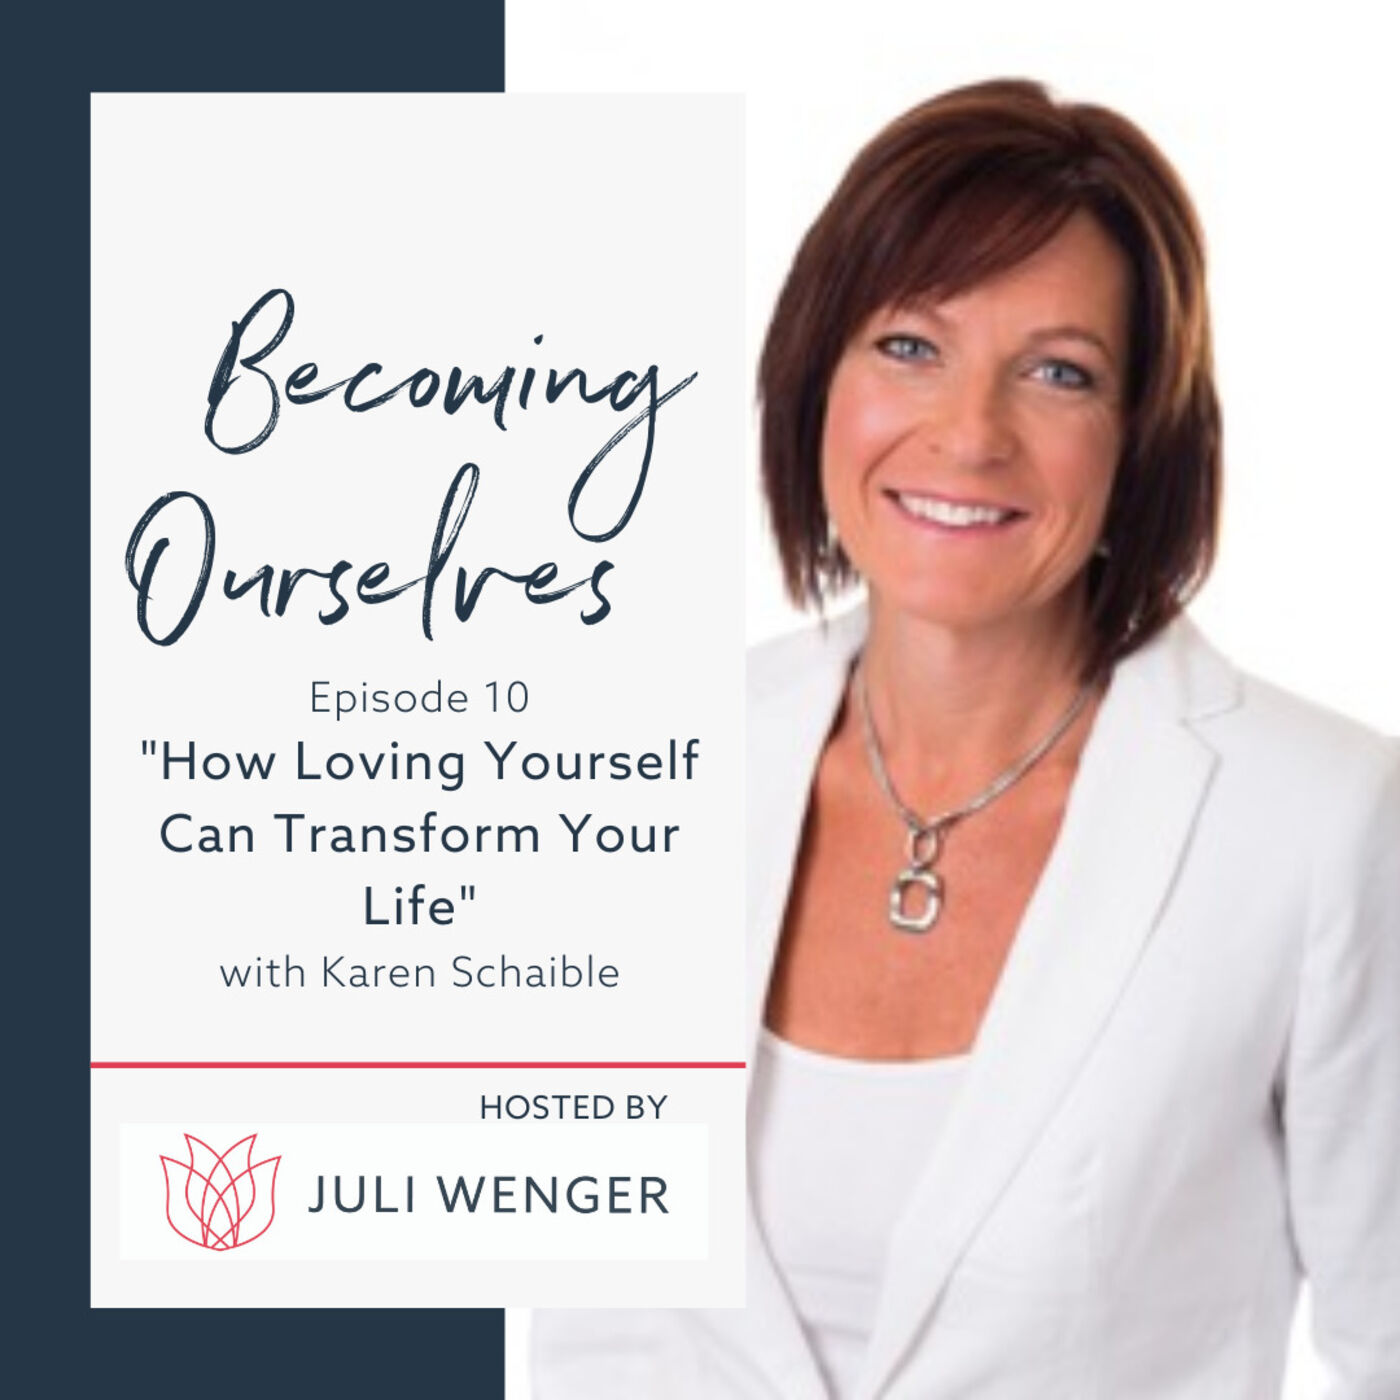 How Loving Yourself Can Transform Your Life with Karen Schaible